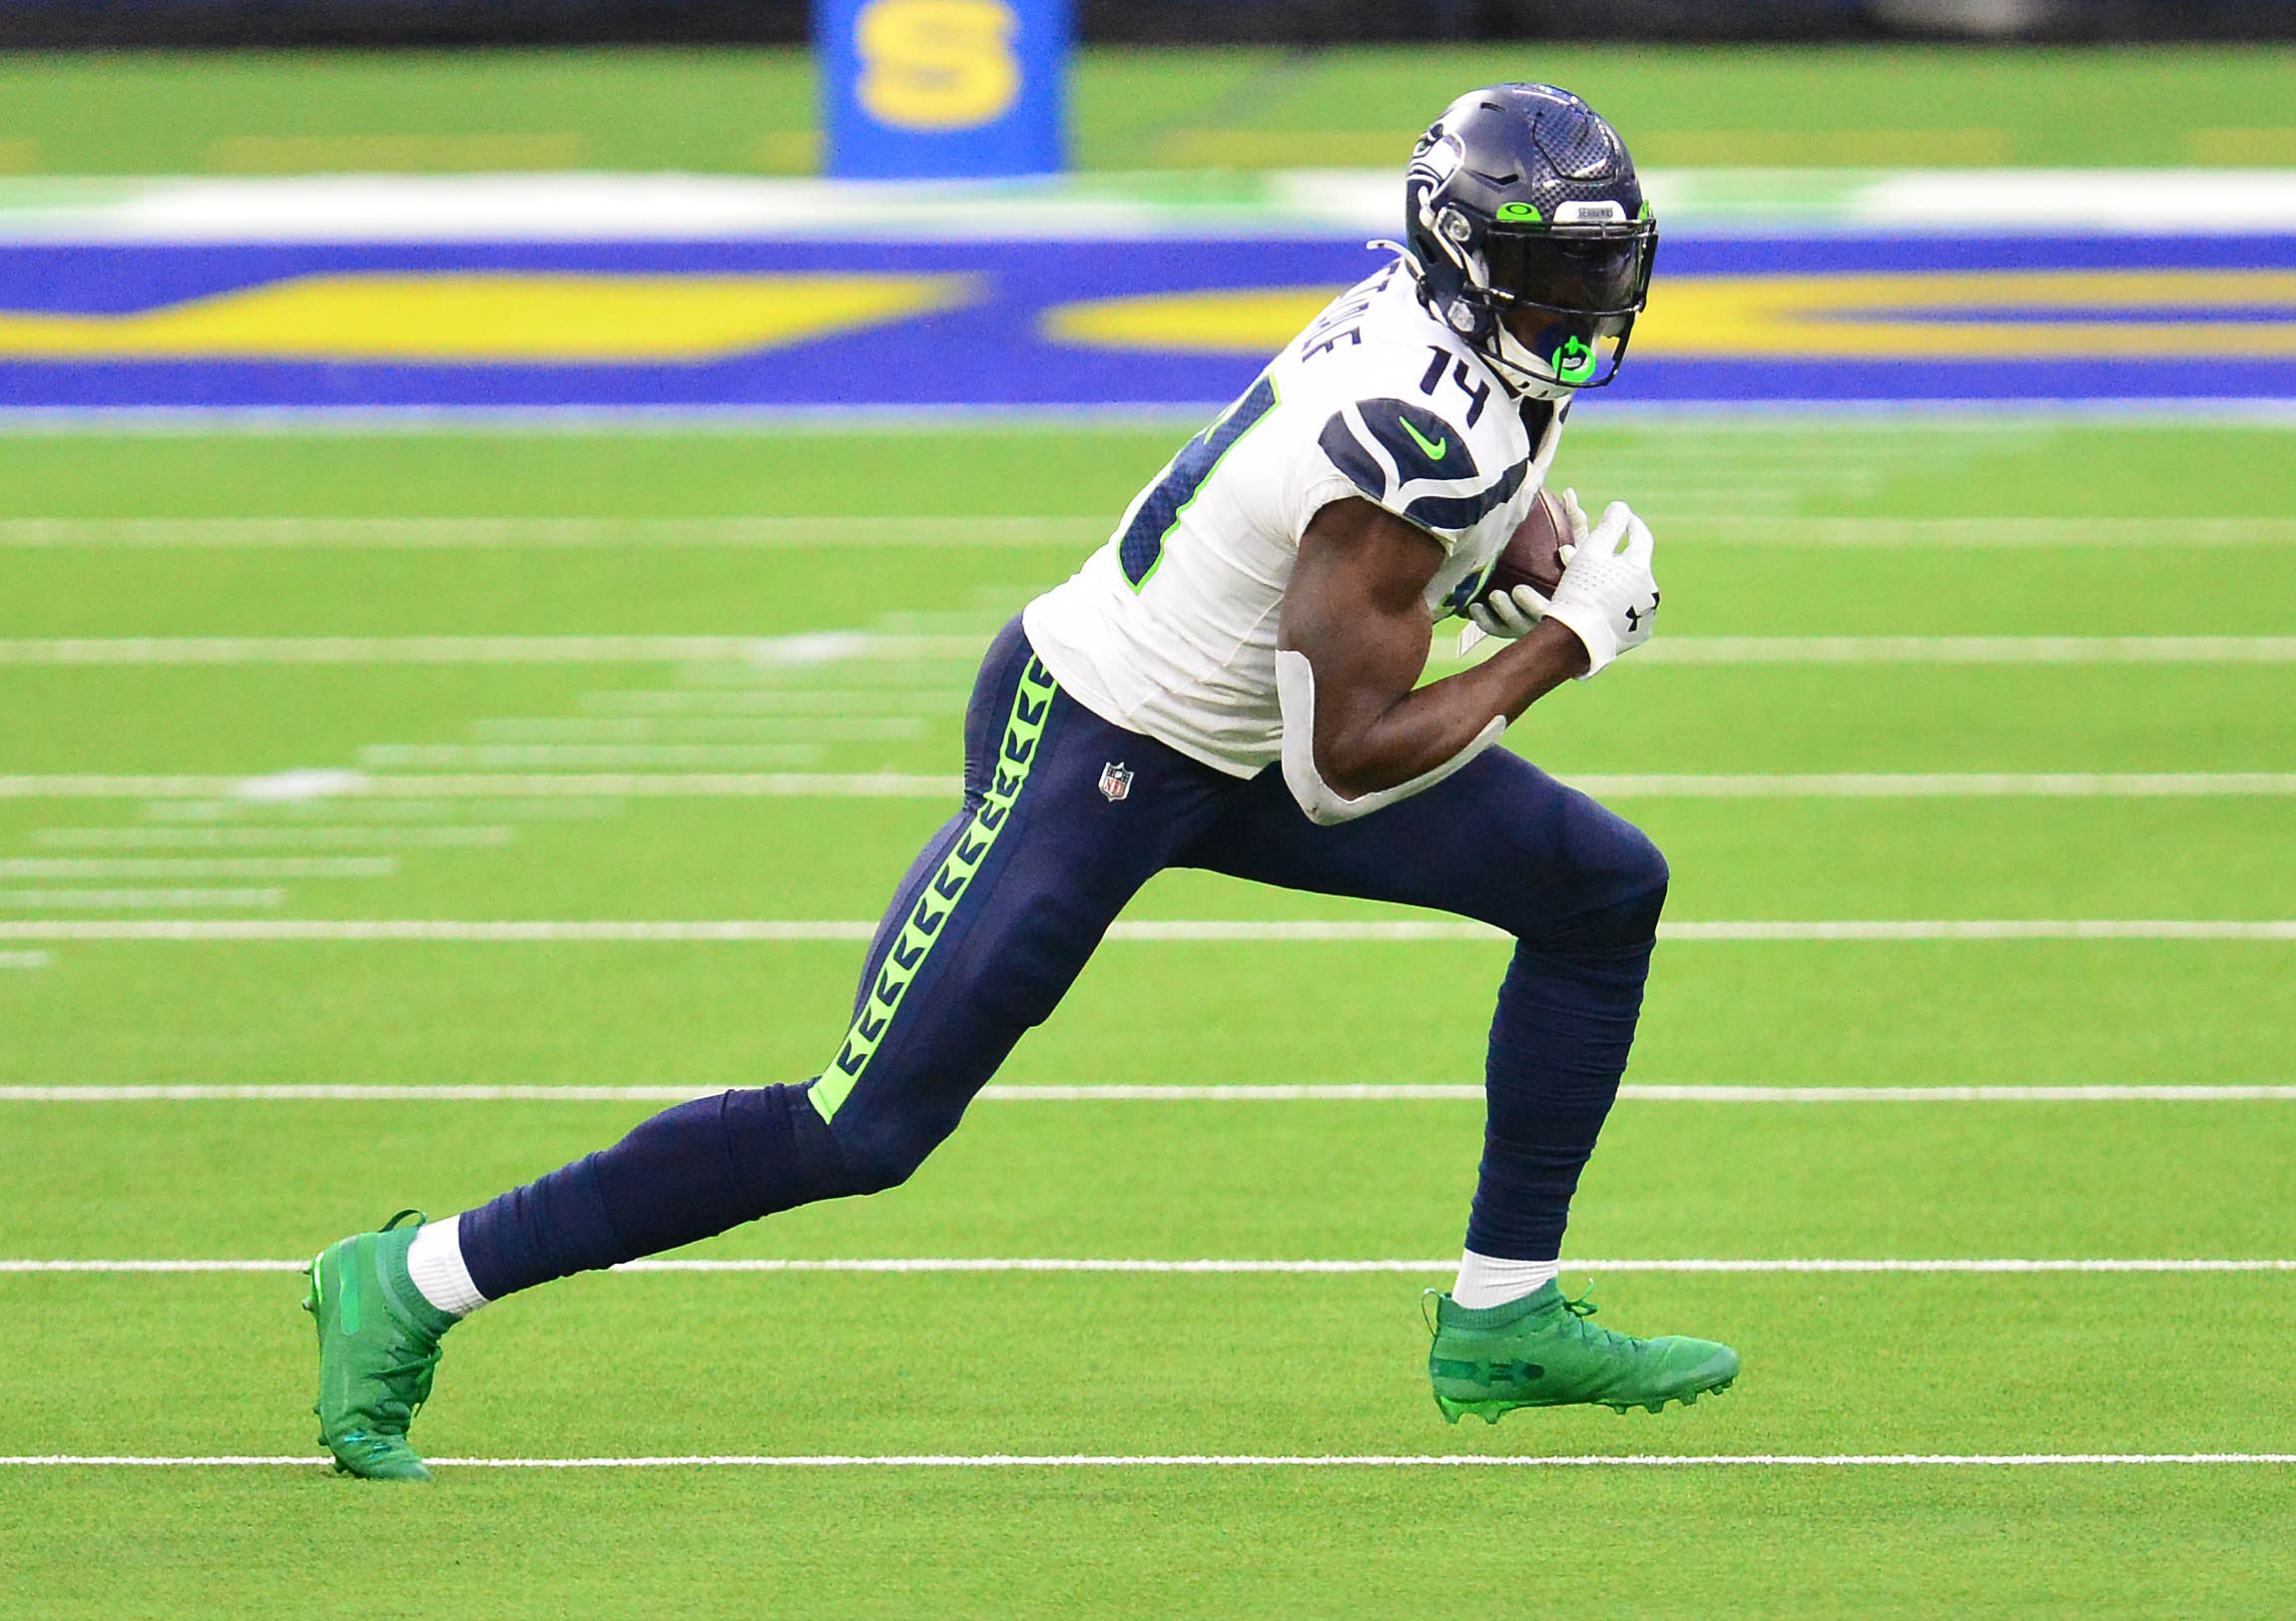 Seattle Seahawks wide receiver DK Metcalf (14) runs the ball against the Los Angeles Rams during the second half at SoFi Stadium.